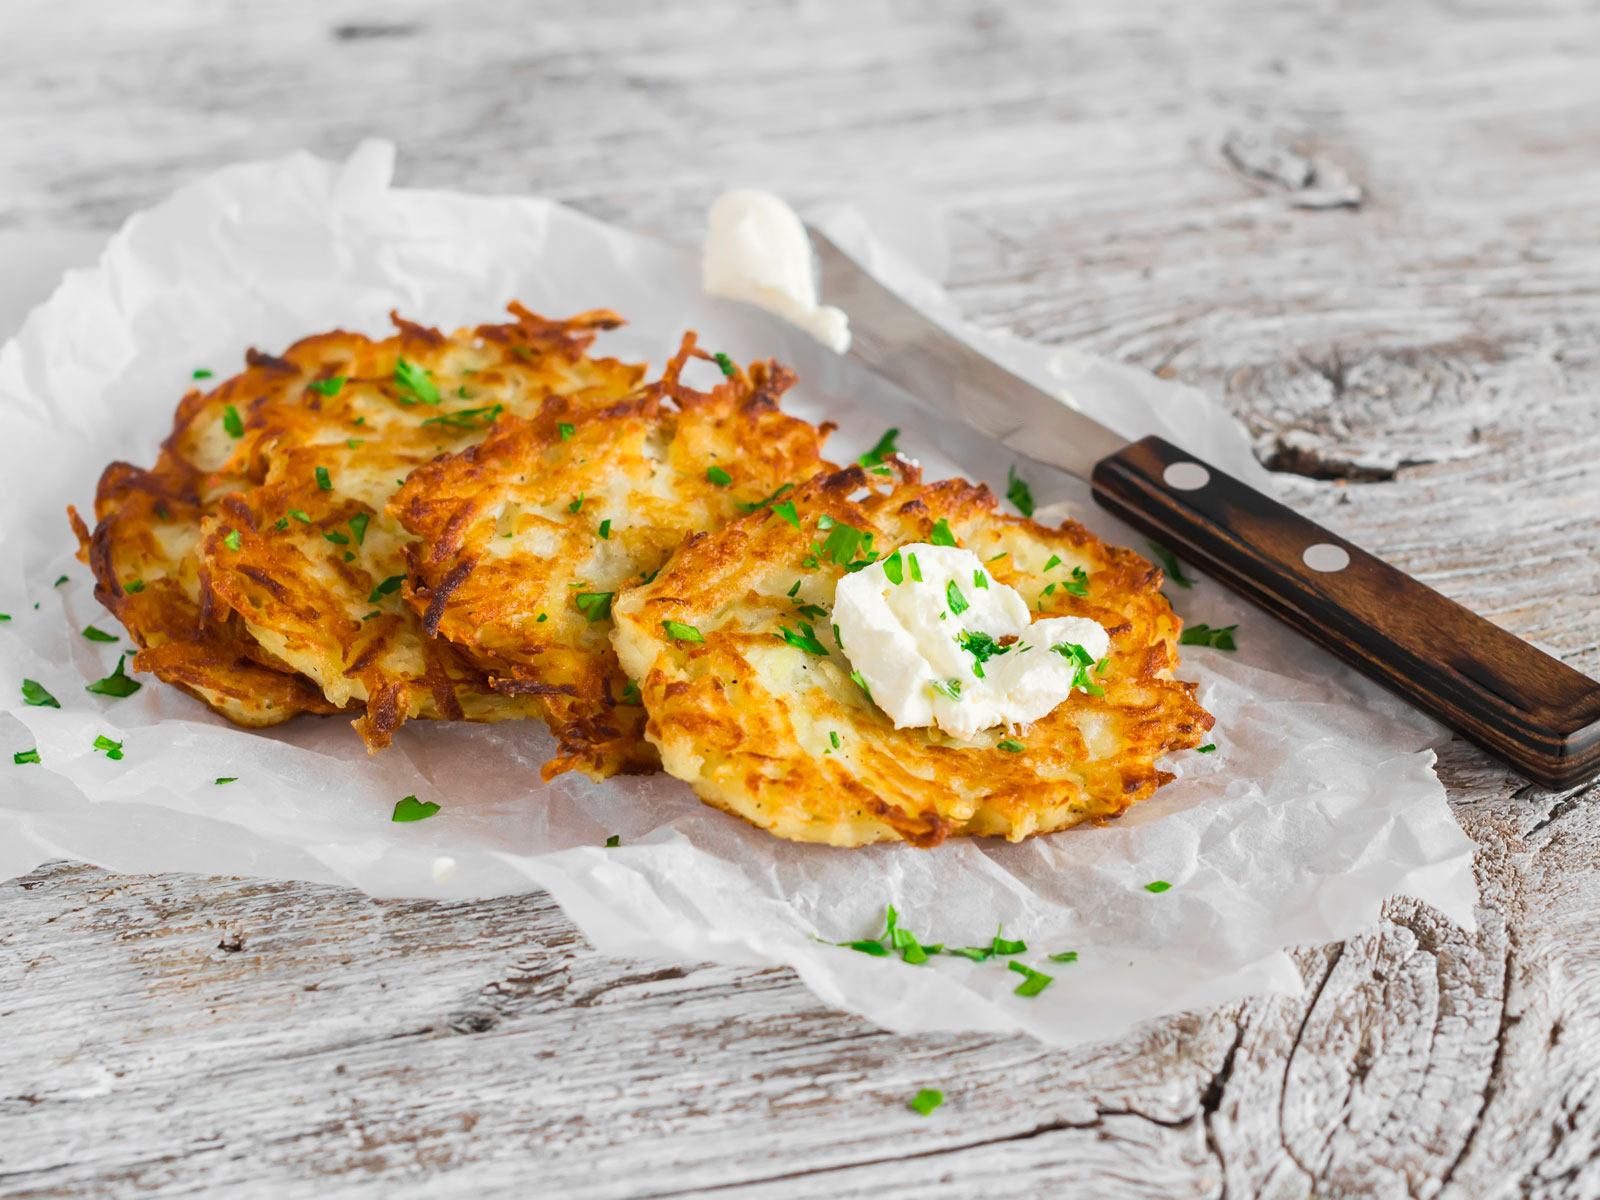 5 Tips for Making Perfect Latkes from Chef Yehuda Sichel